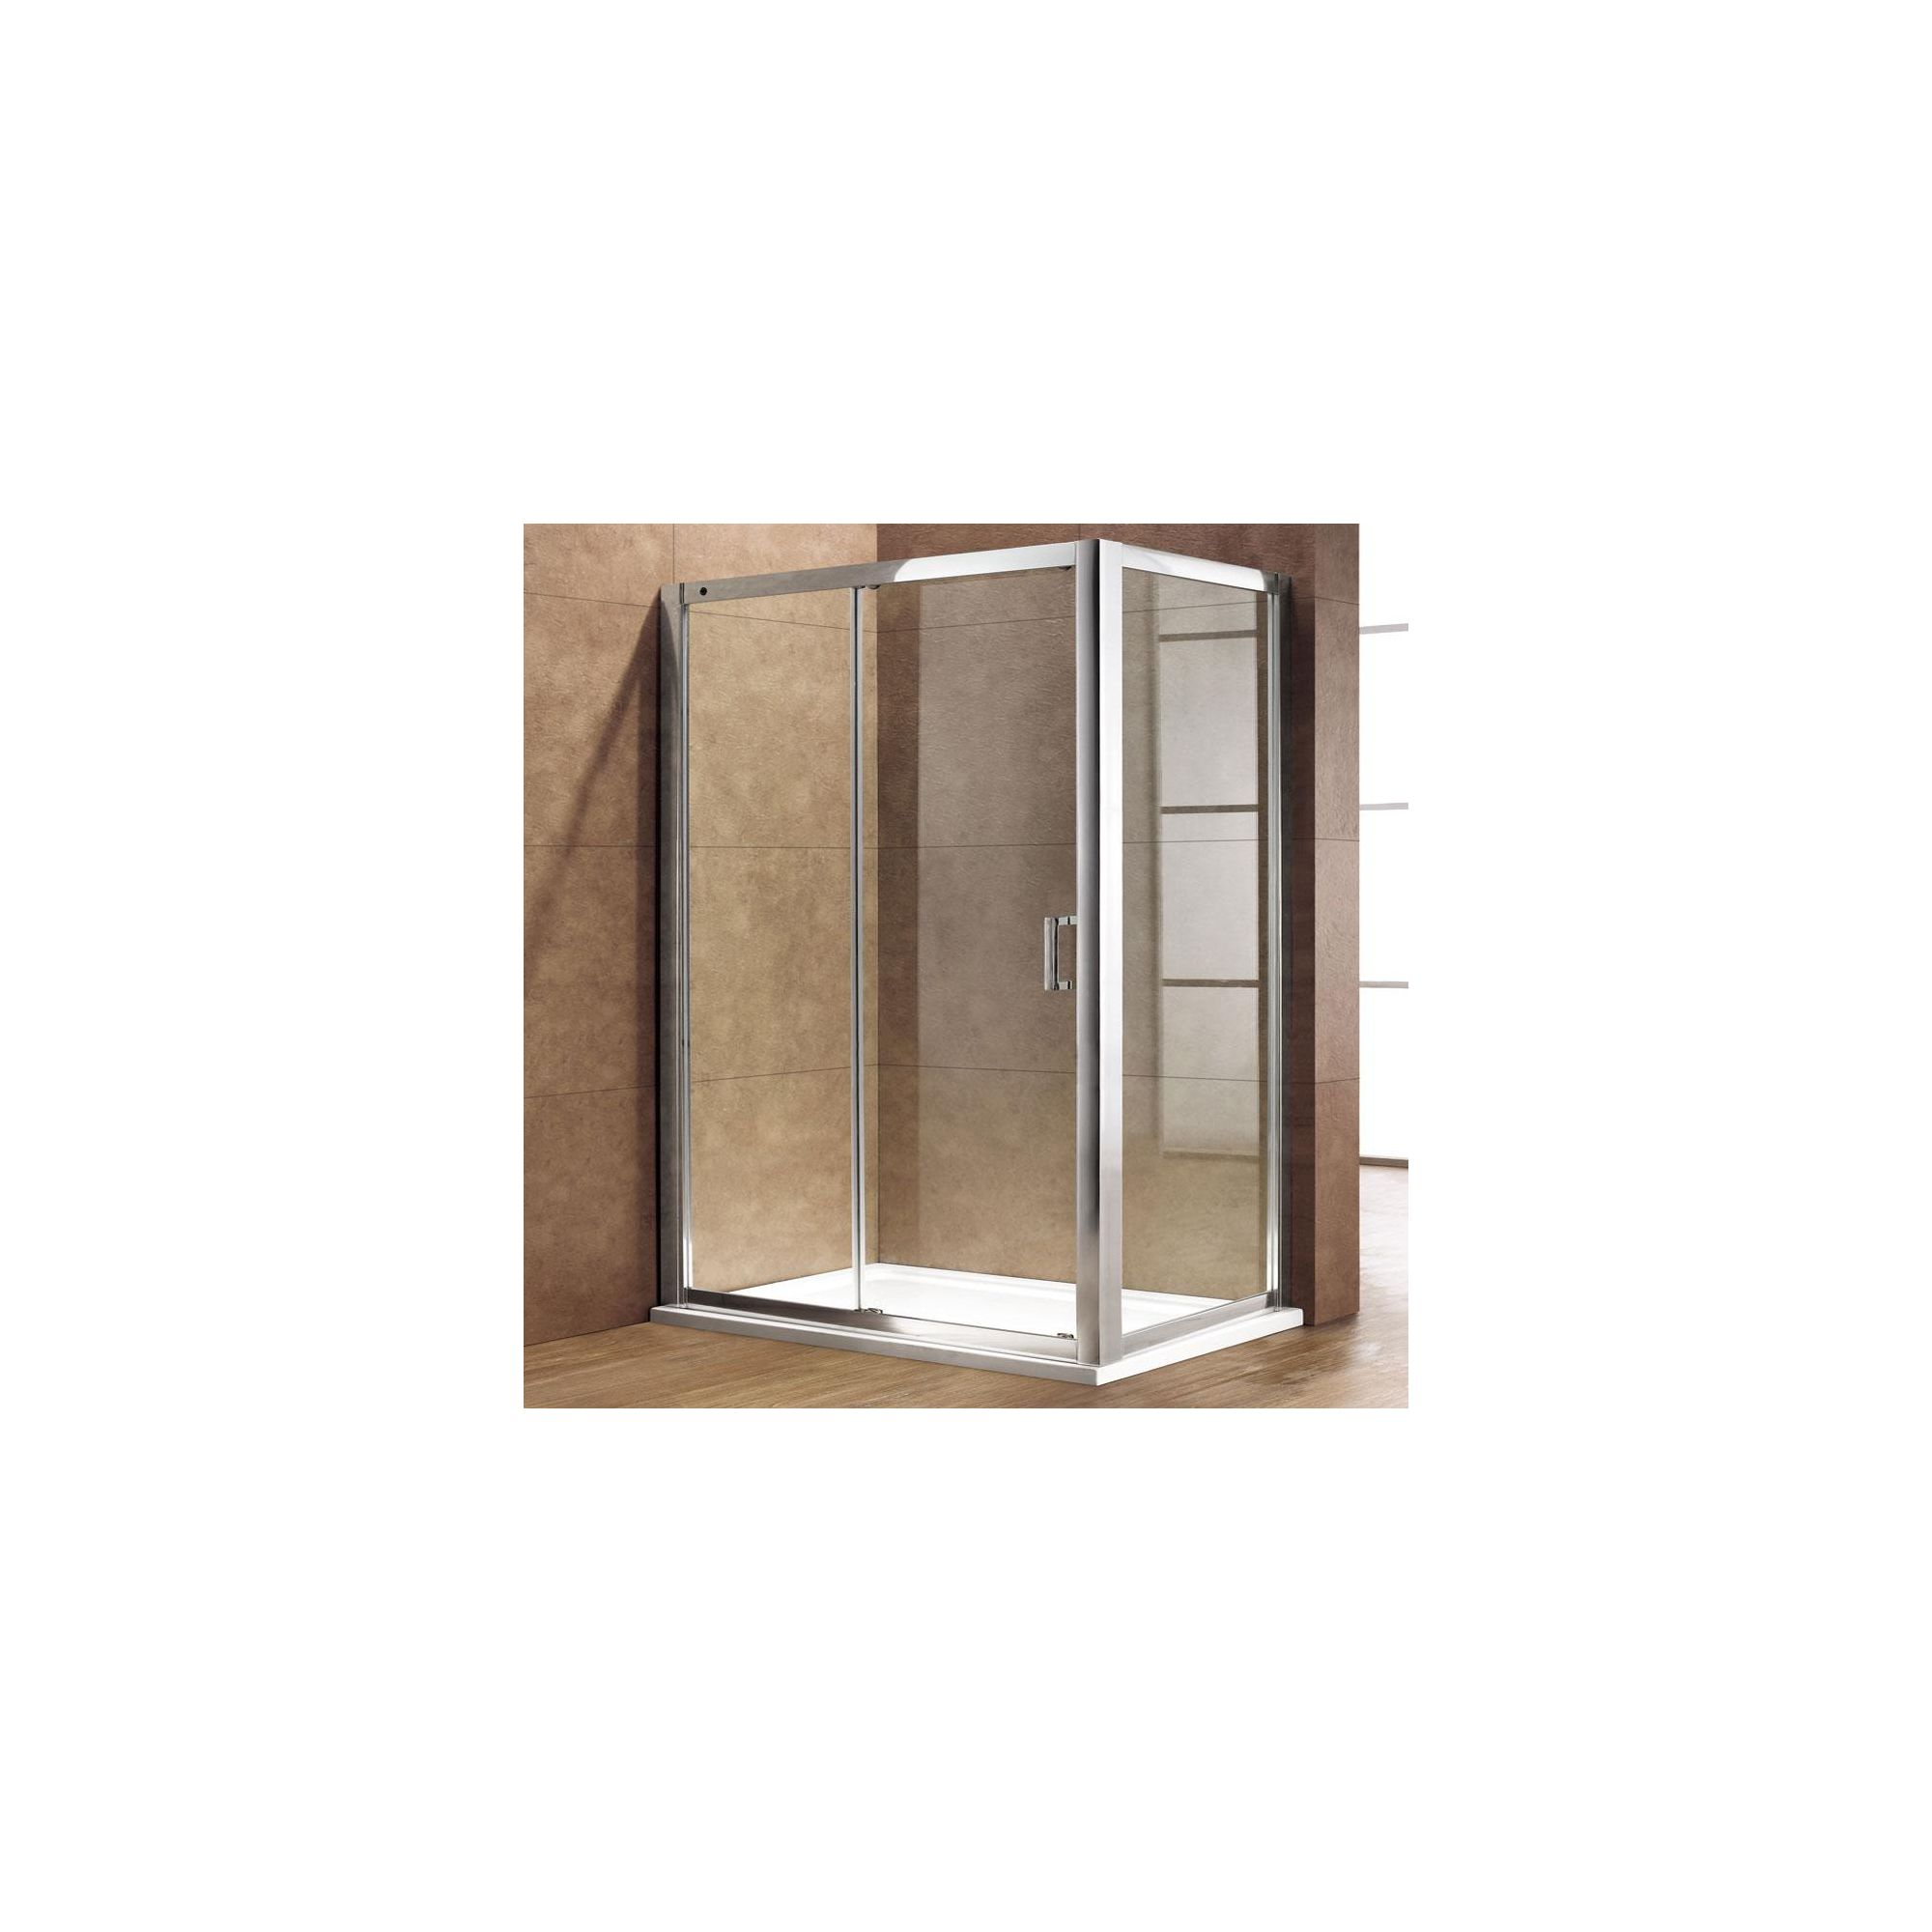 Duchy Premium Single Sliding Door Shower Enclosure, 1100mm x 900mm, 8mm Glass, Low Profile Tray at Tesco Direct